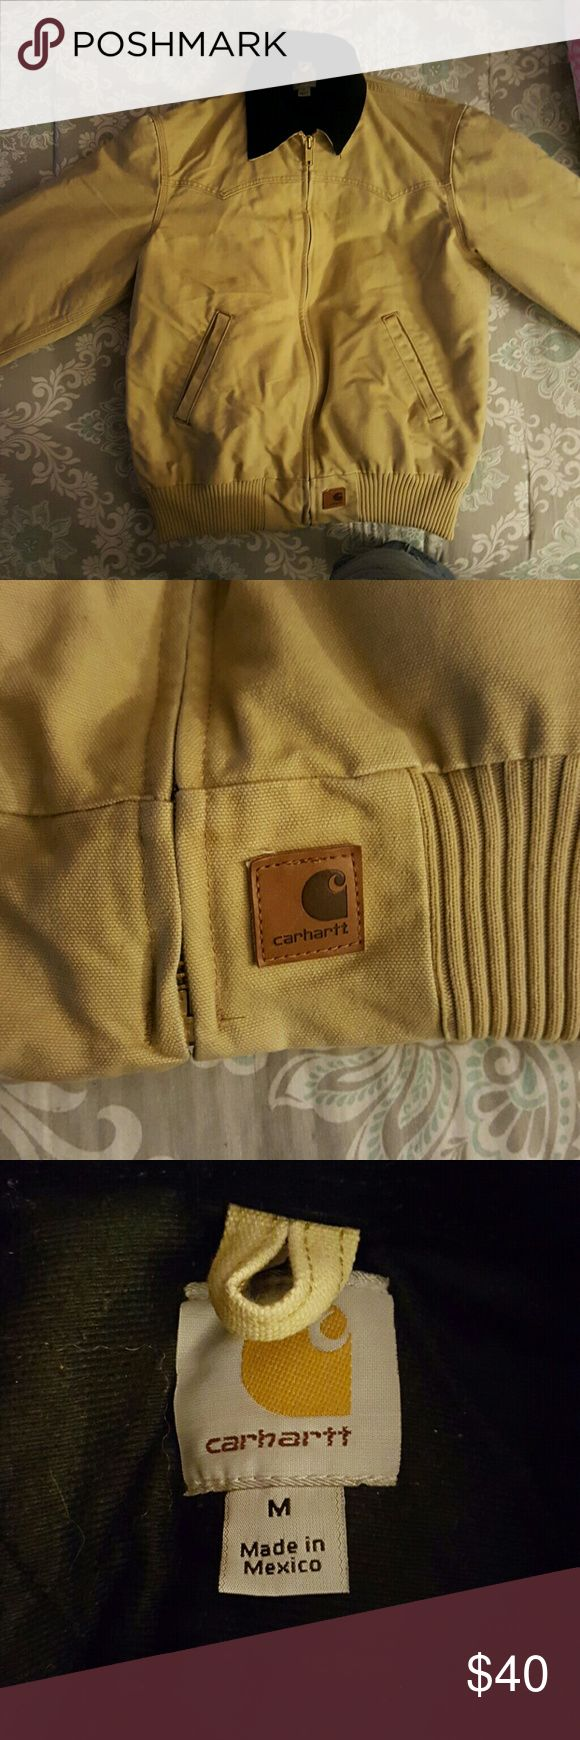 Carhartt Winter Jacket Medium Very Good Condition,  Light Tan, Black Quilted Liner Carhartt Jackets & Coats Military & Field